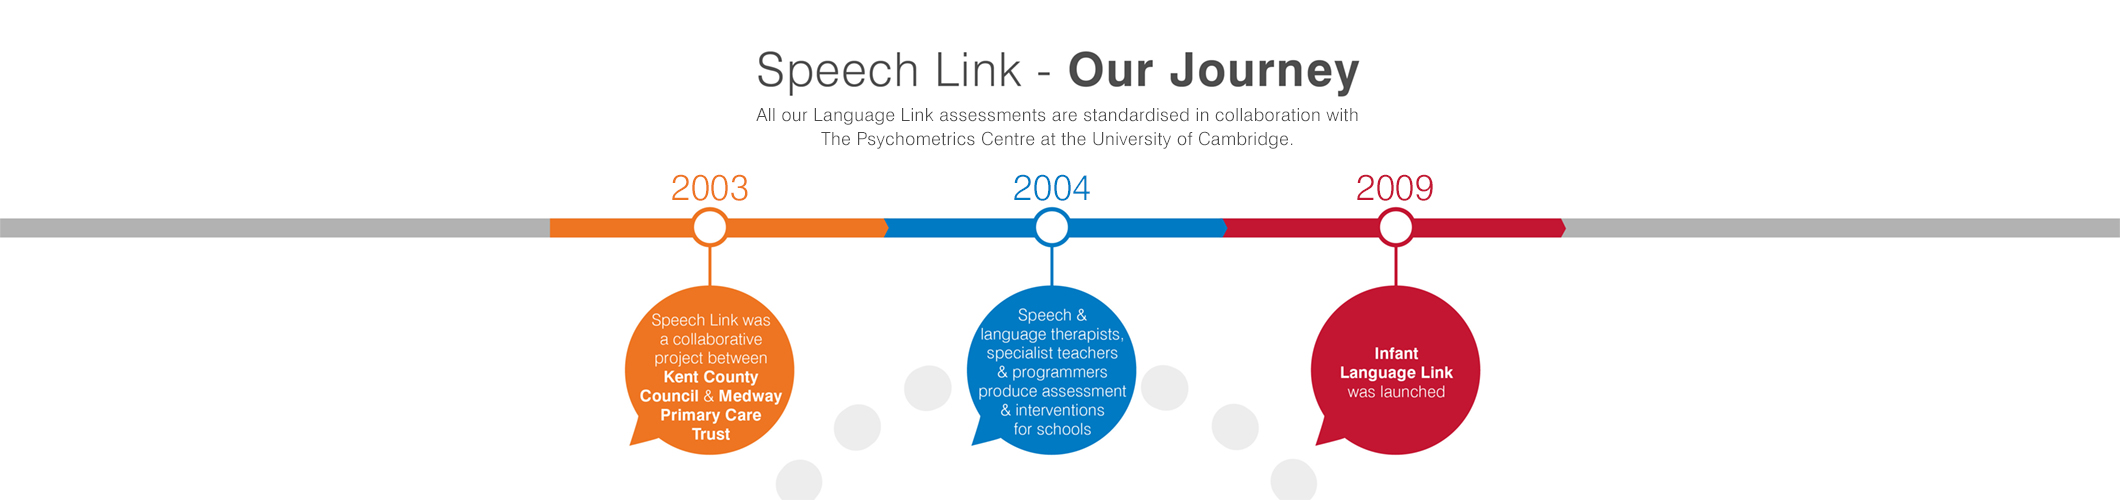 Speech Link Journey